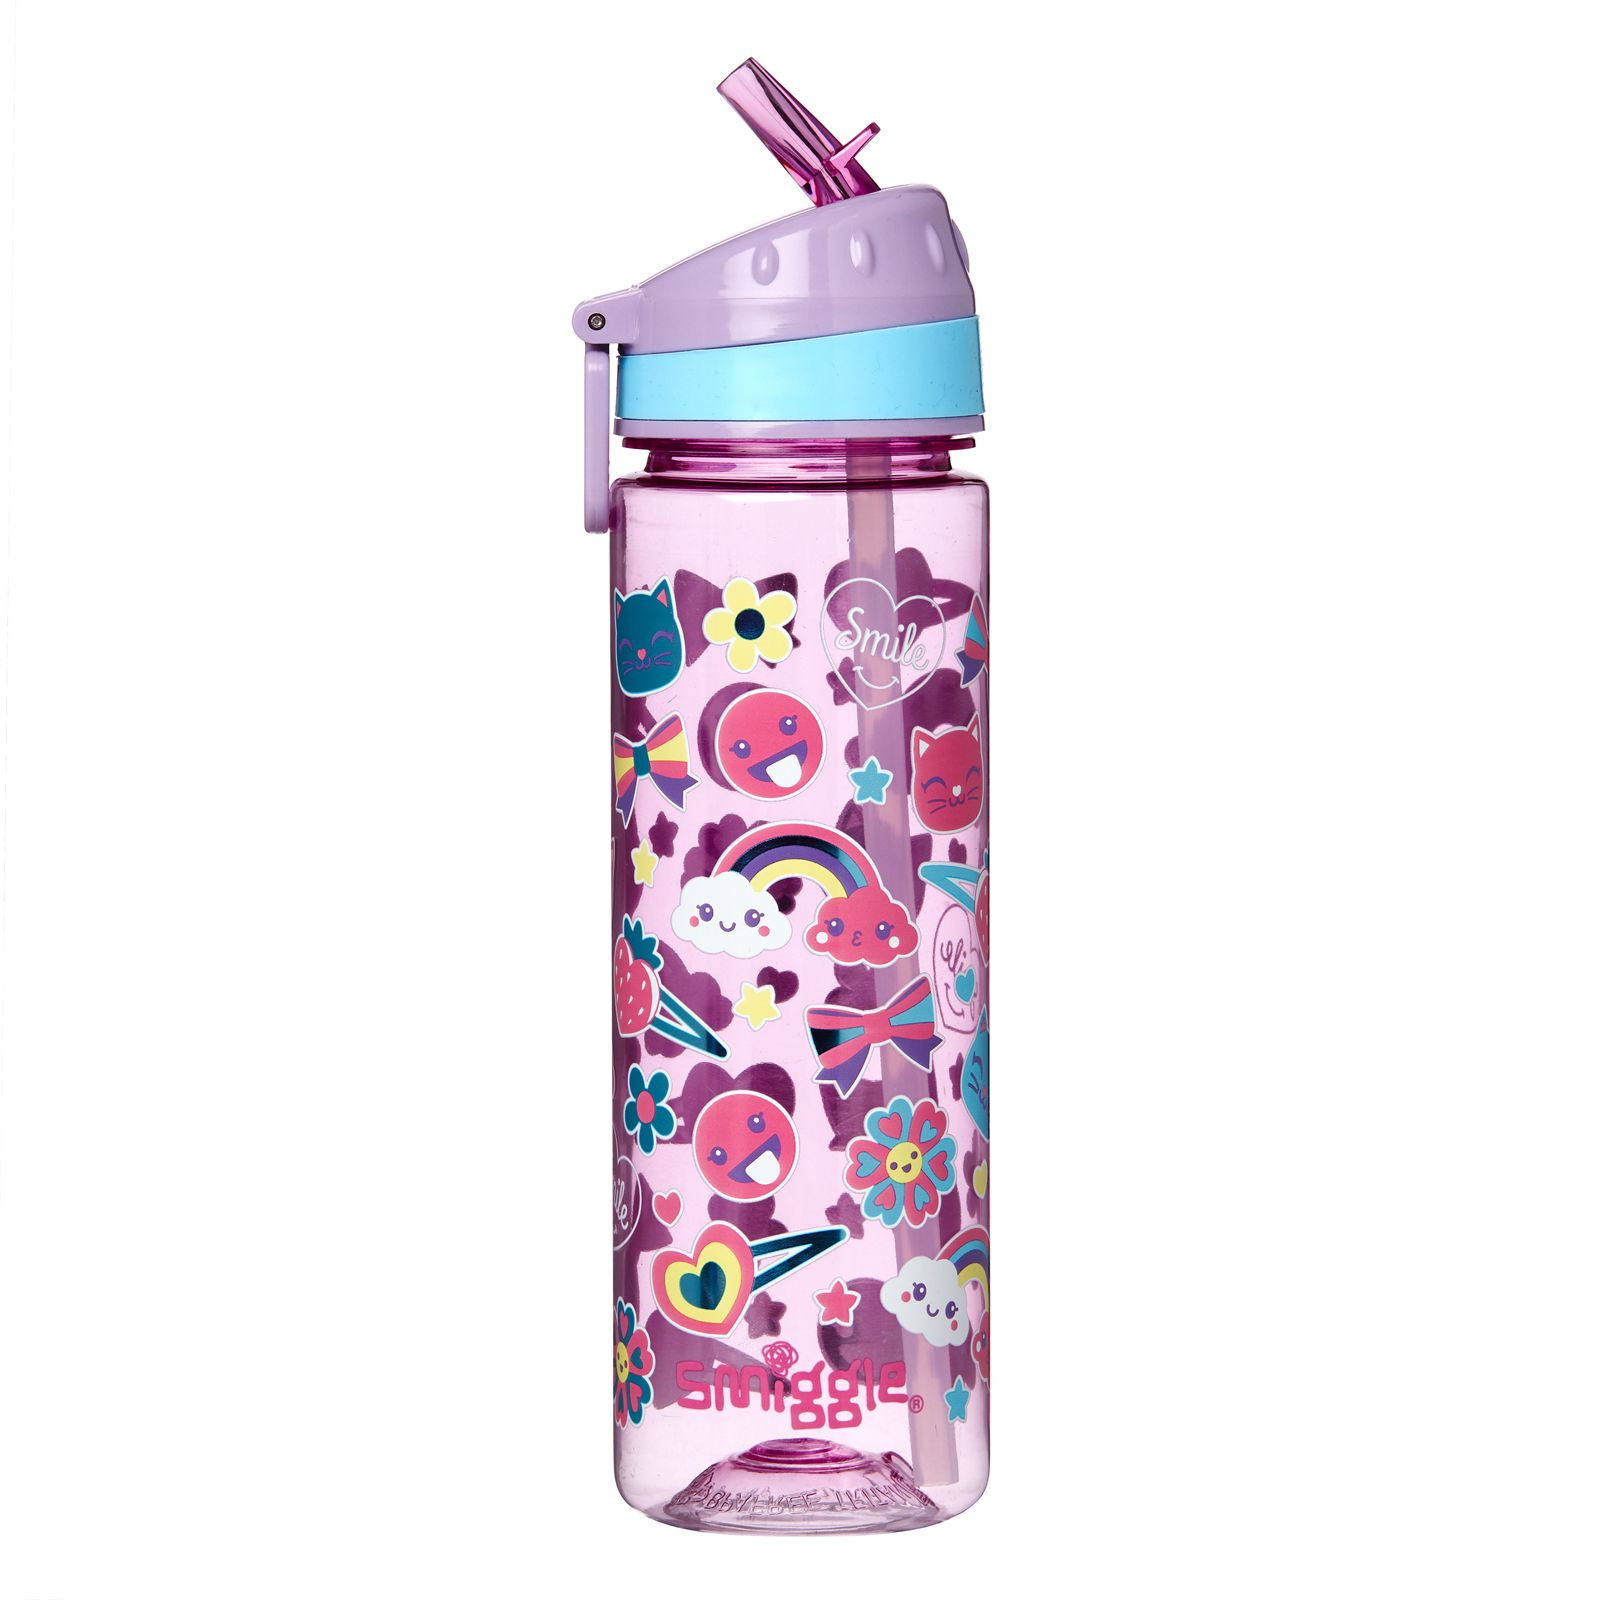 8bc2b389dbb Stylin' Drink Up Water Bottle | Smiggle | water bottle in 2019 ...